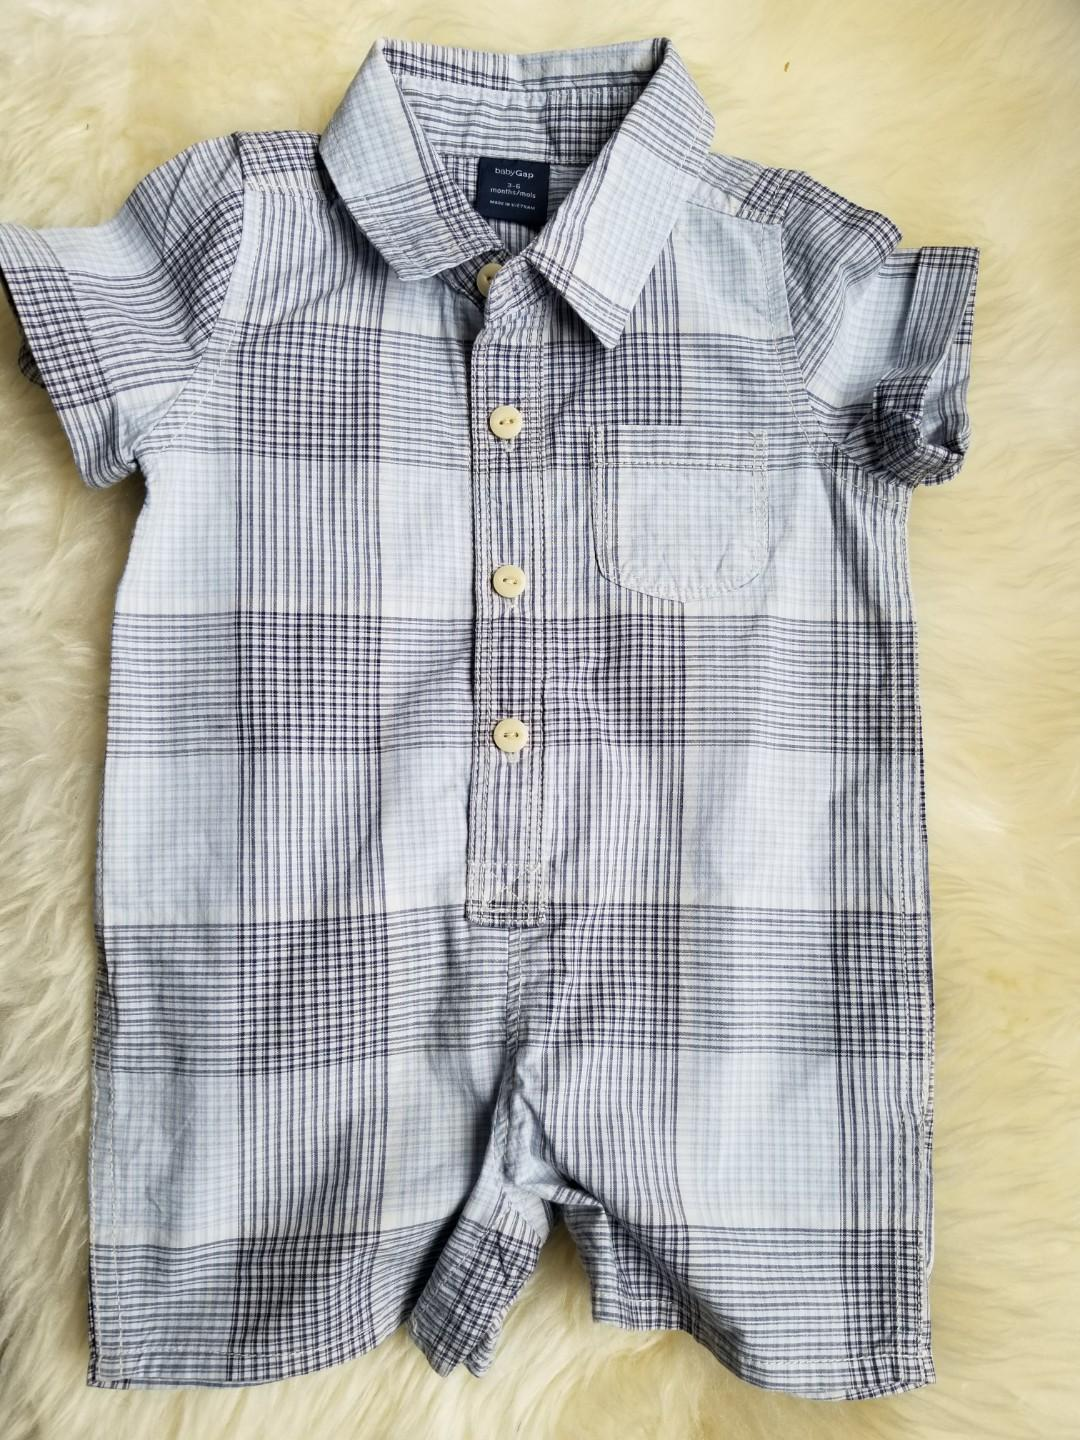 Baby Gap romper. New. No tags. Perfect for spring break. Size 3-6mths. We purchased new for $39. PU gerrard and main for $14 or $15 yorkville.